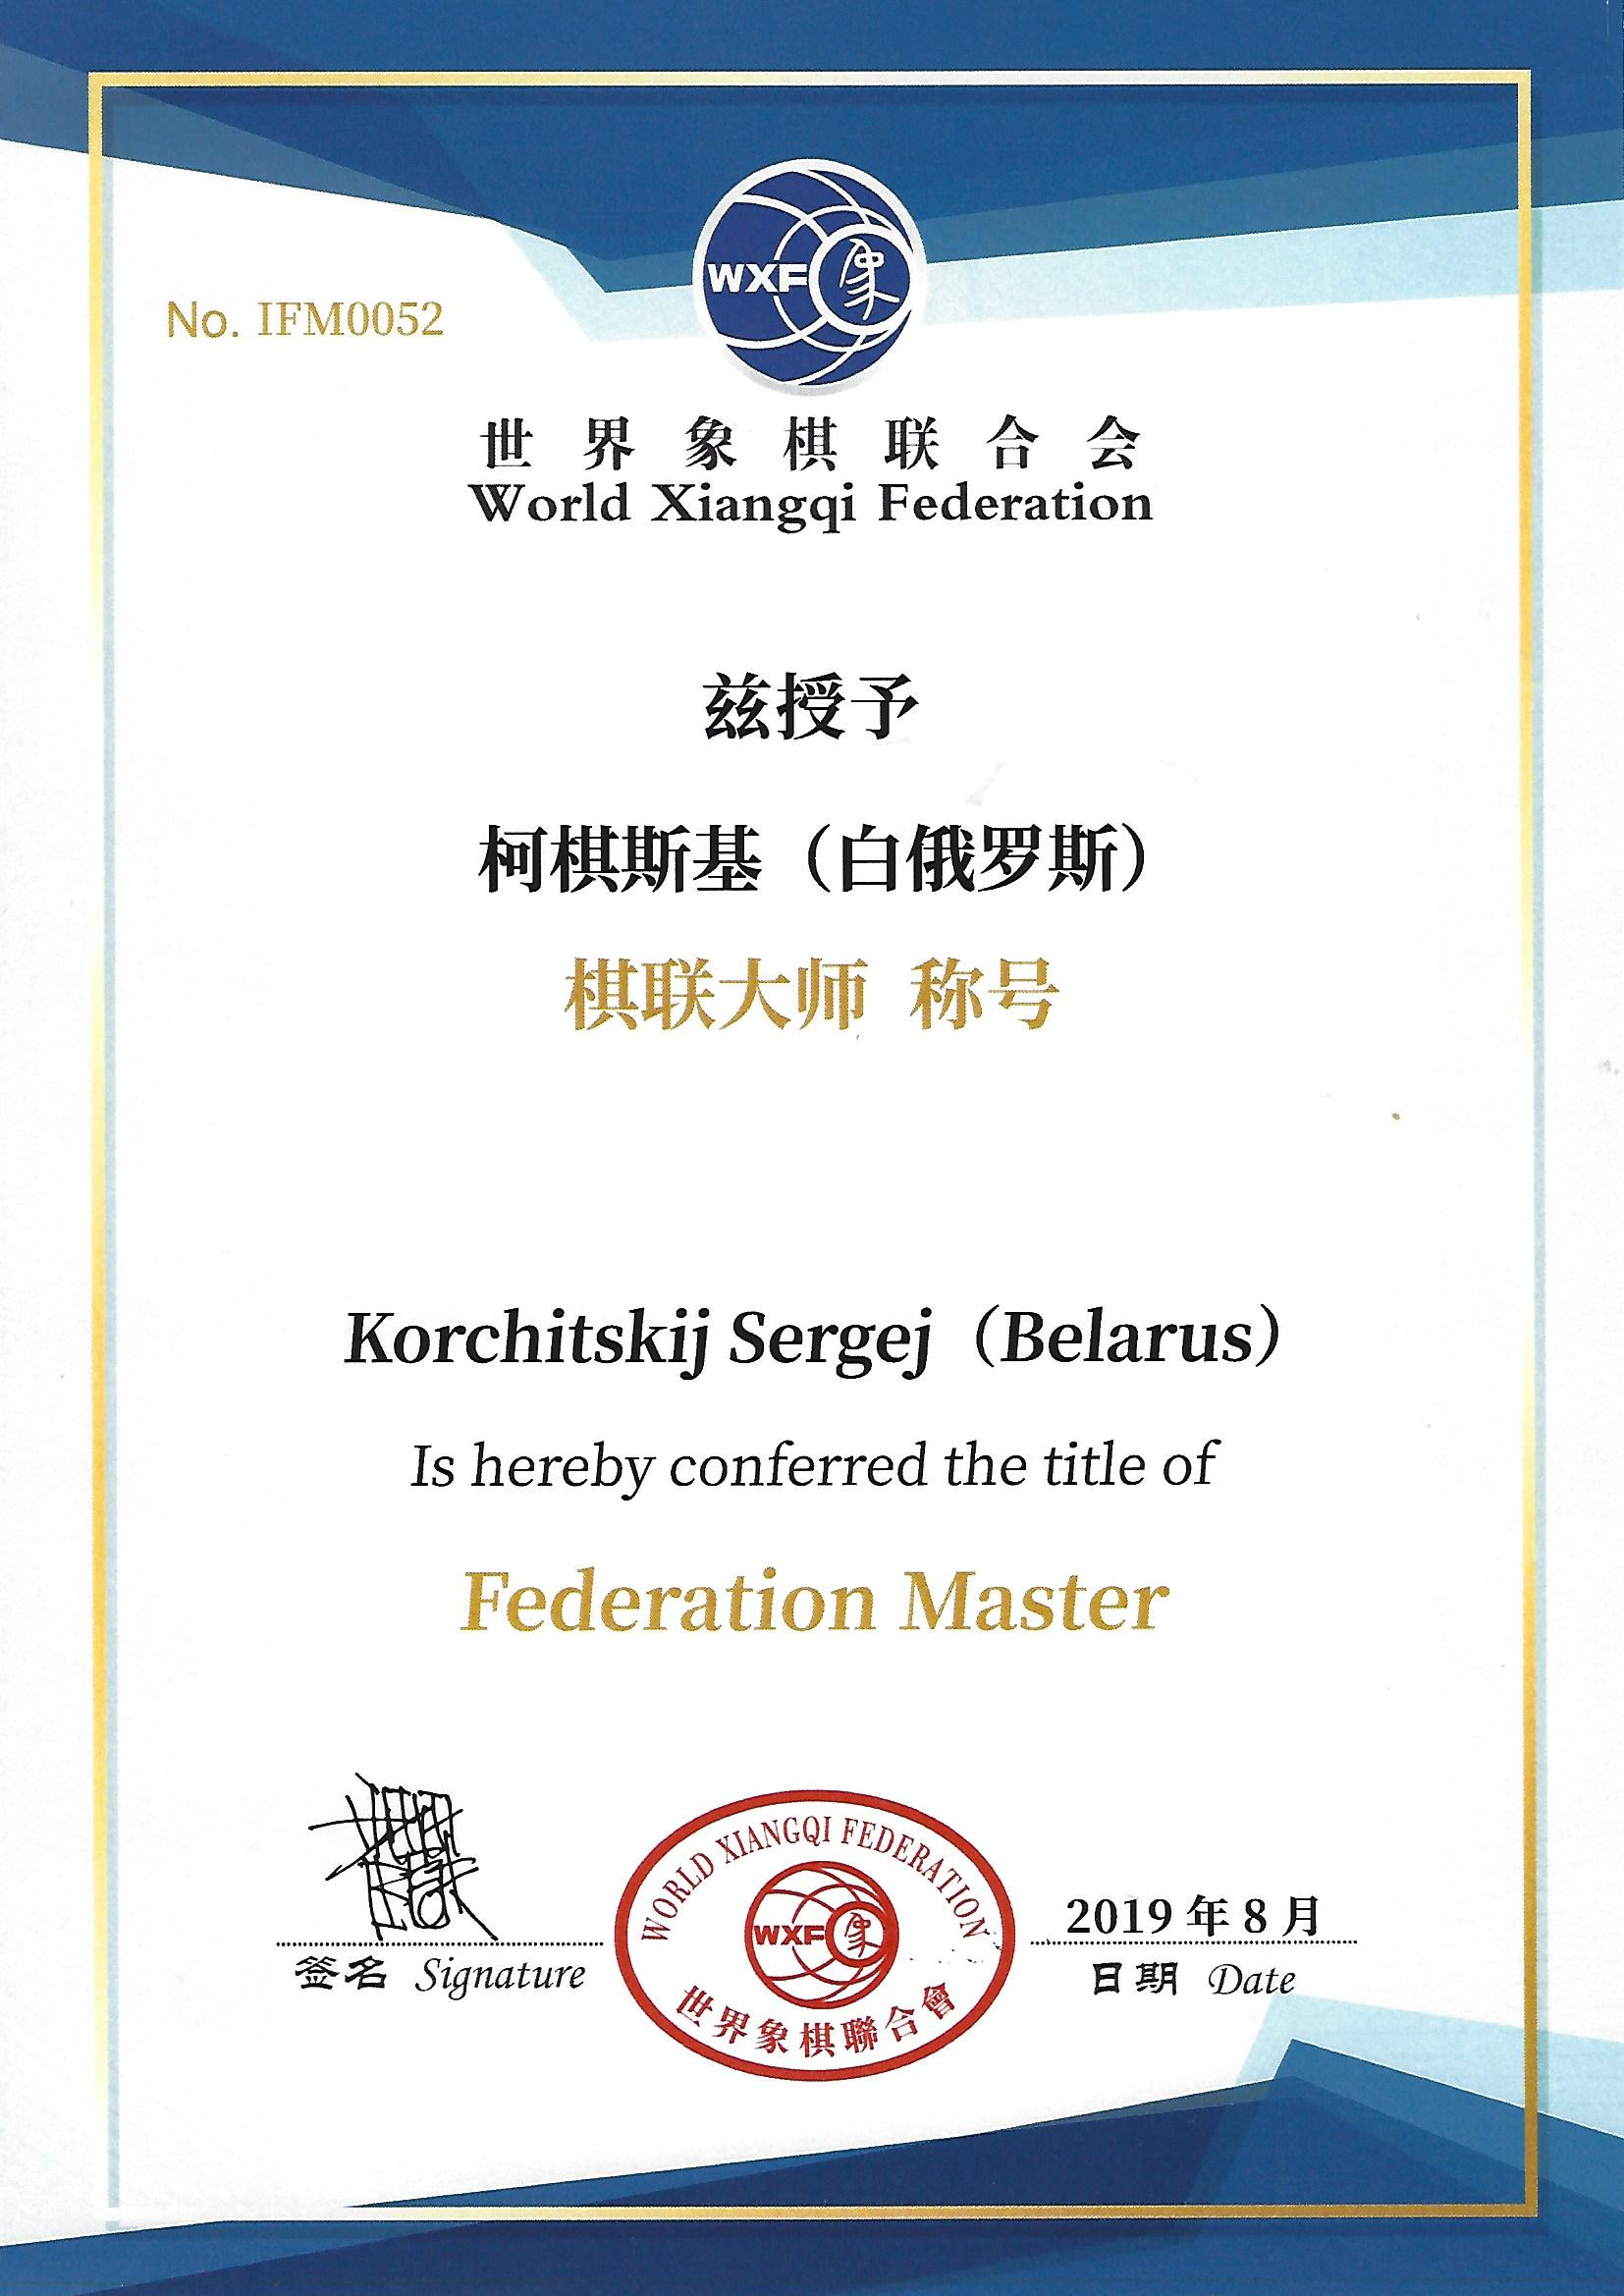 Certificate issued to Xiangqi Federation Master